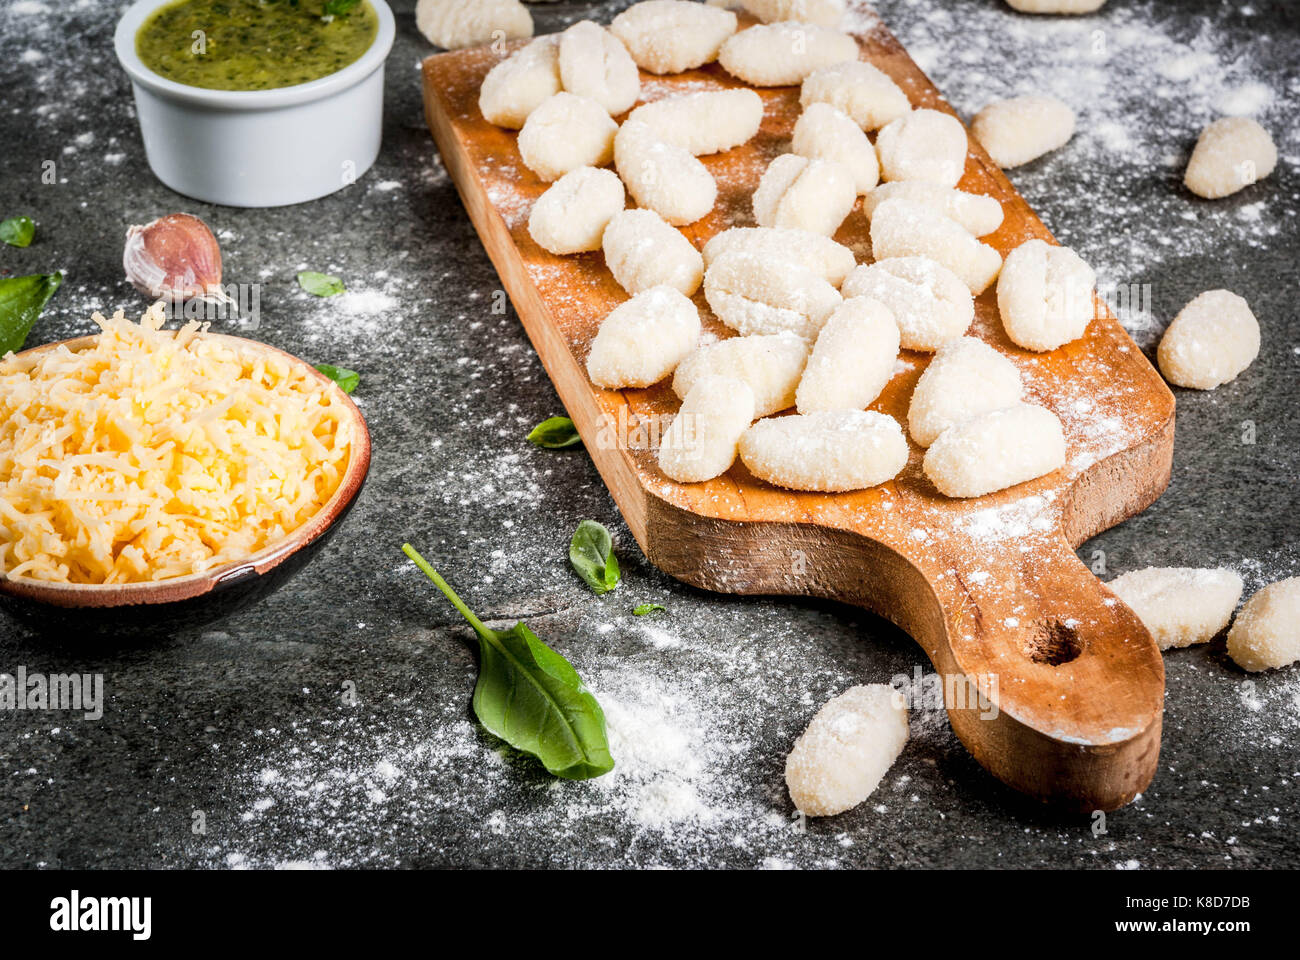 Raw uncooked homemade potato gnocchi with flour, grated parmesan cheese, basil and pesto sauce. On concrete grey - Stock Image